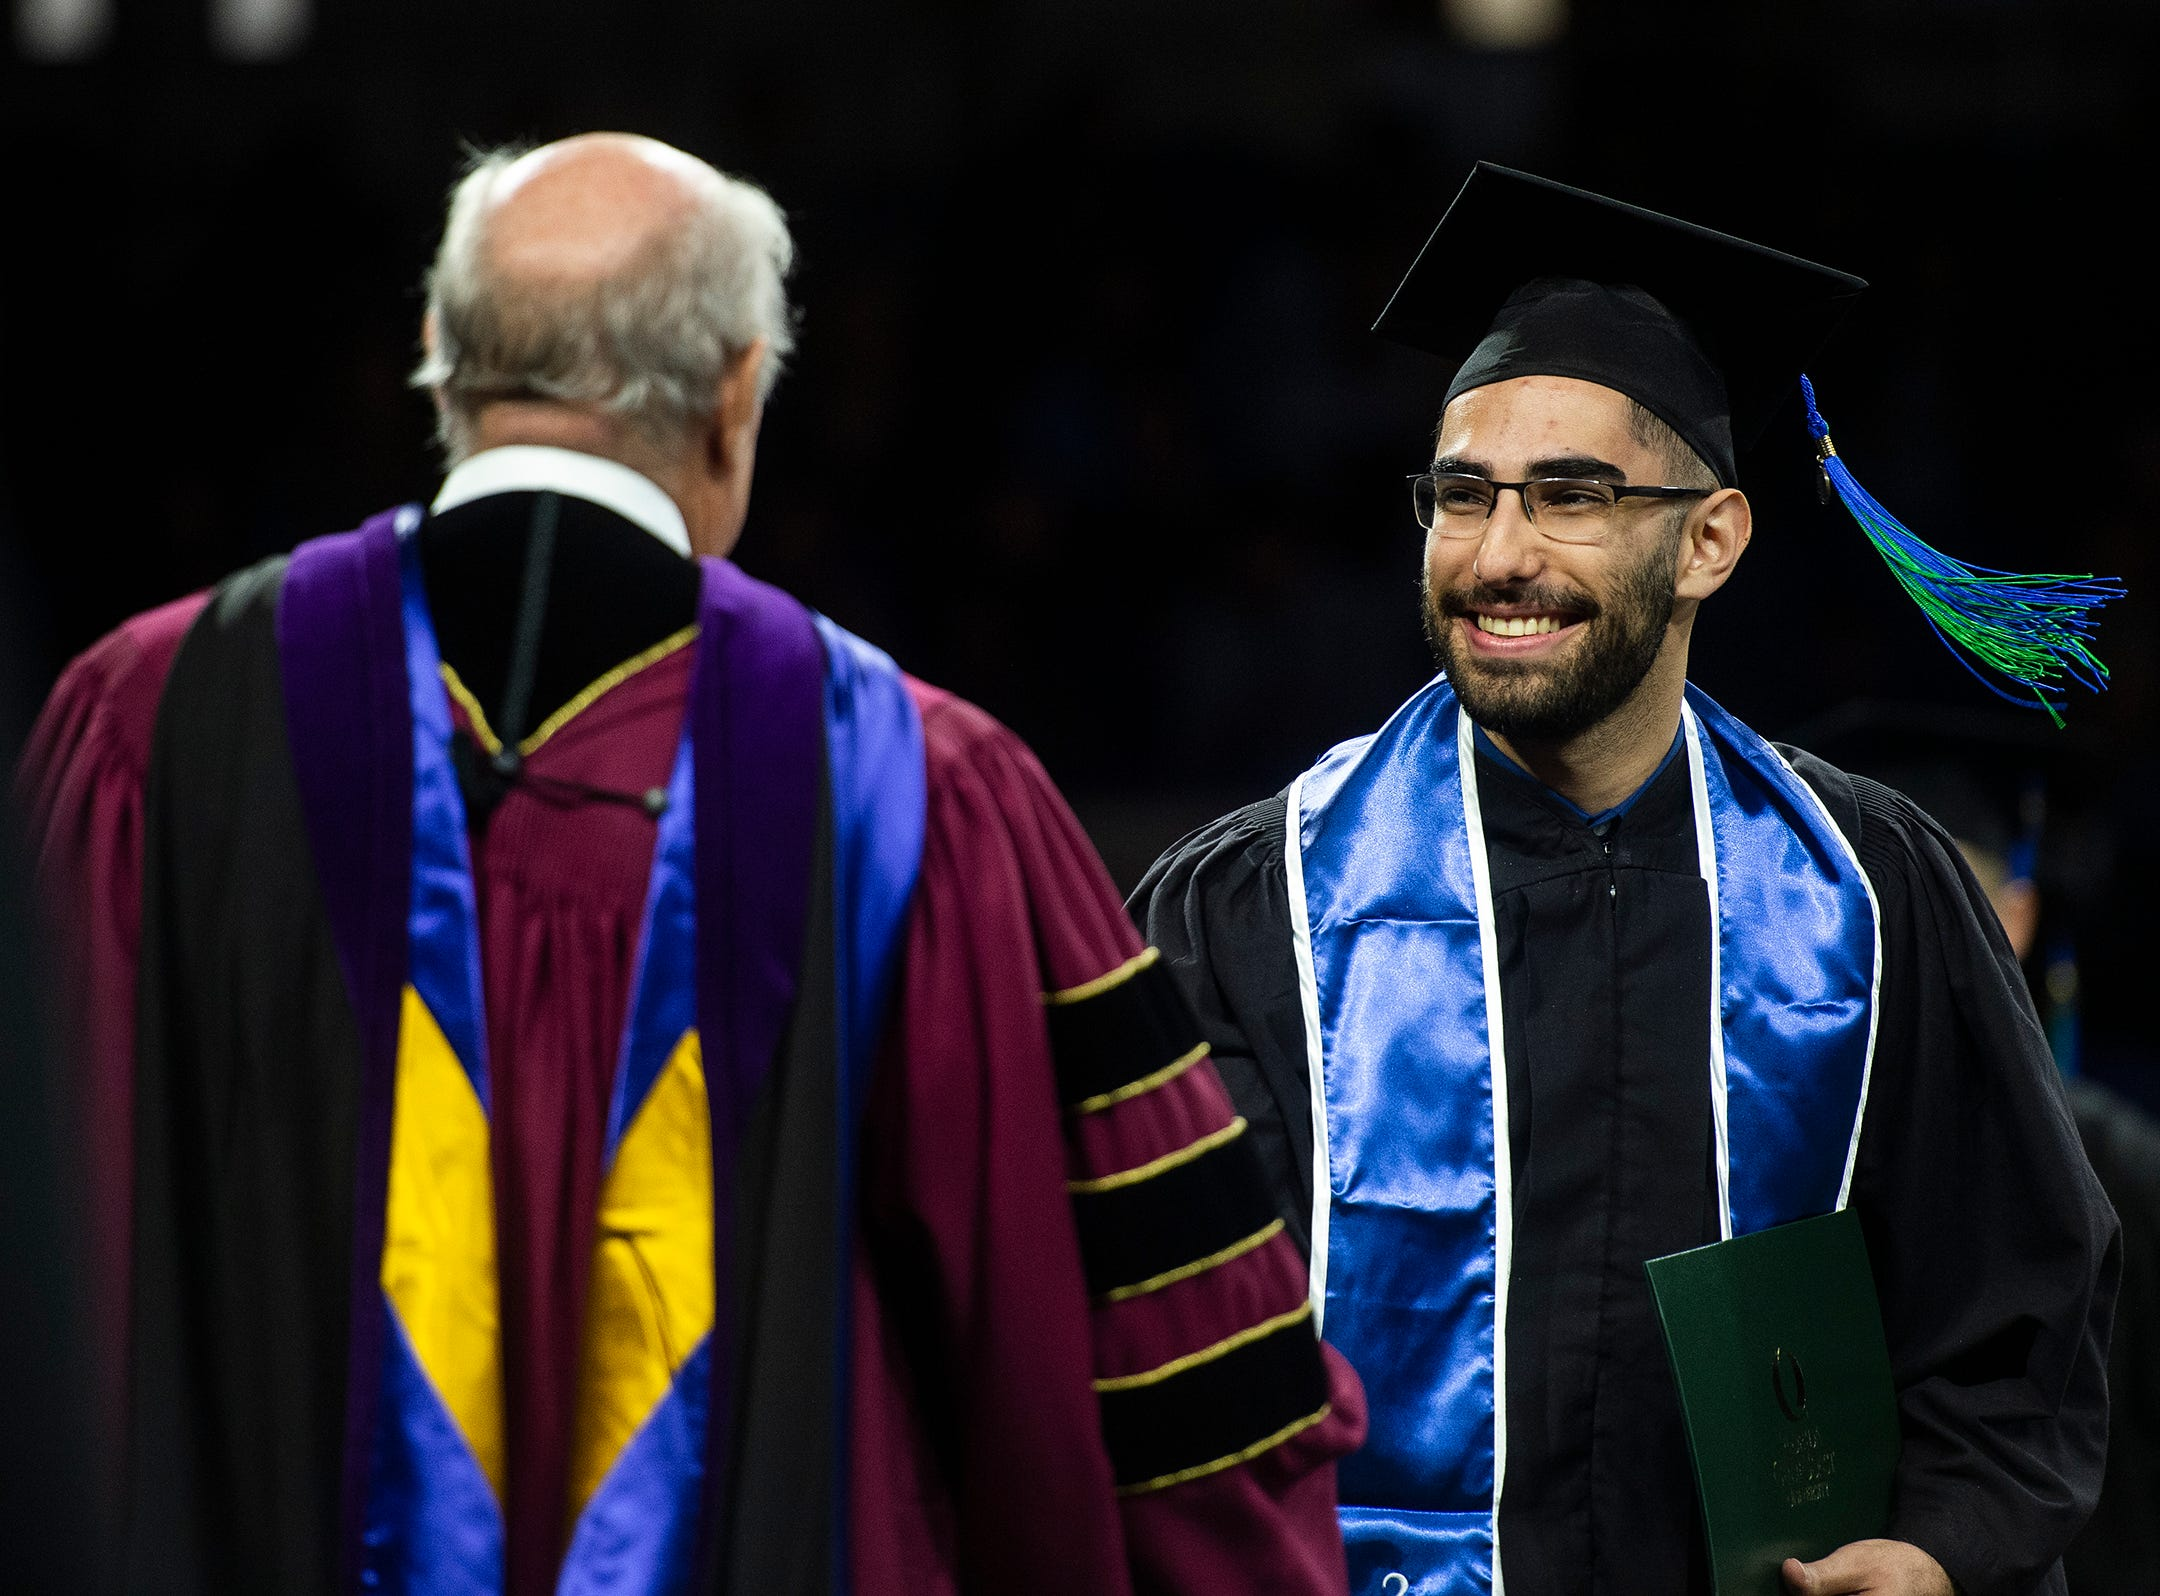 Scenes from the graduation ceremony of Florida Gulf Coast University's fall class at Alico Arena in Fort Myers, Fla., on Sunday, December 16, 2018.